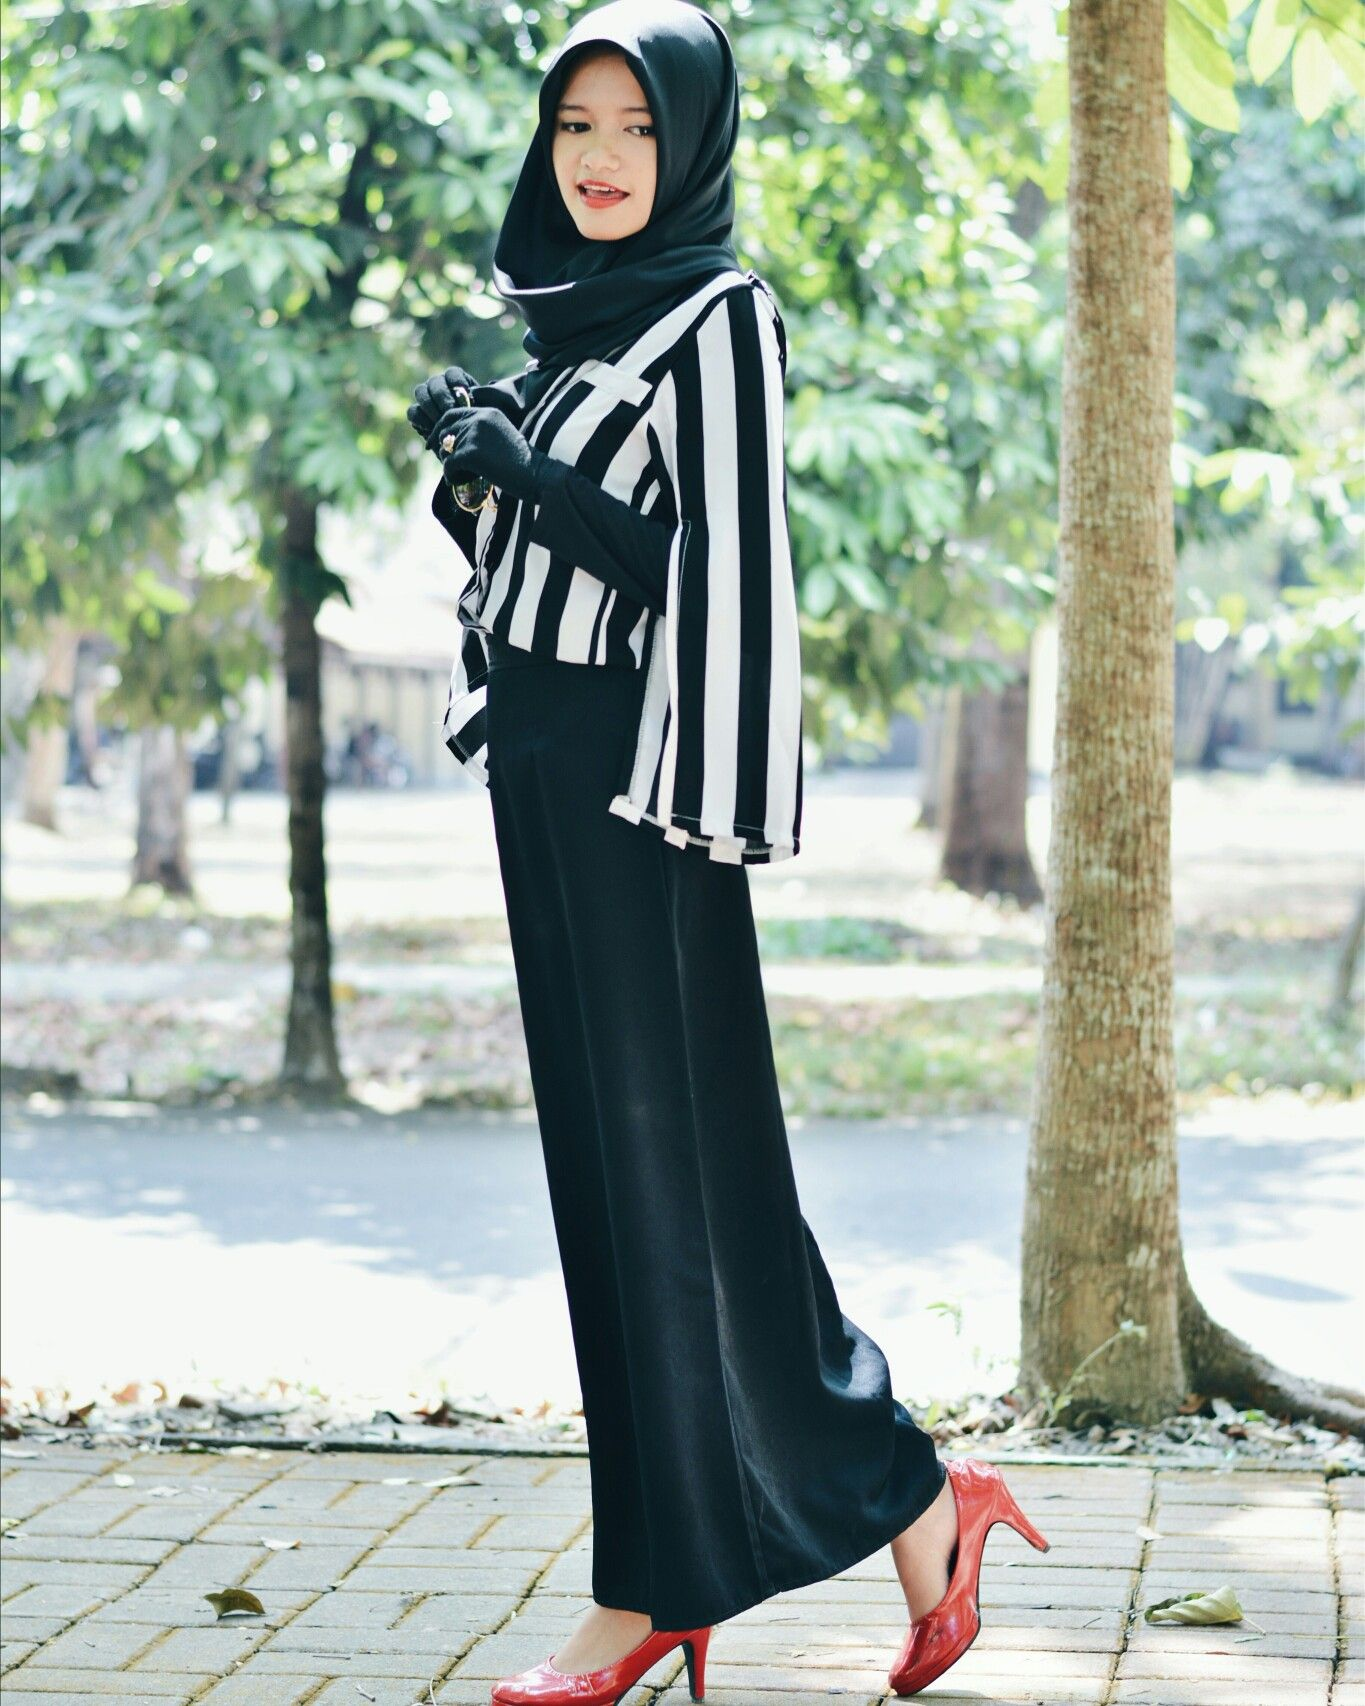 Trying to look classic with black Stripes top black skirt black hijab